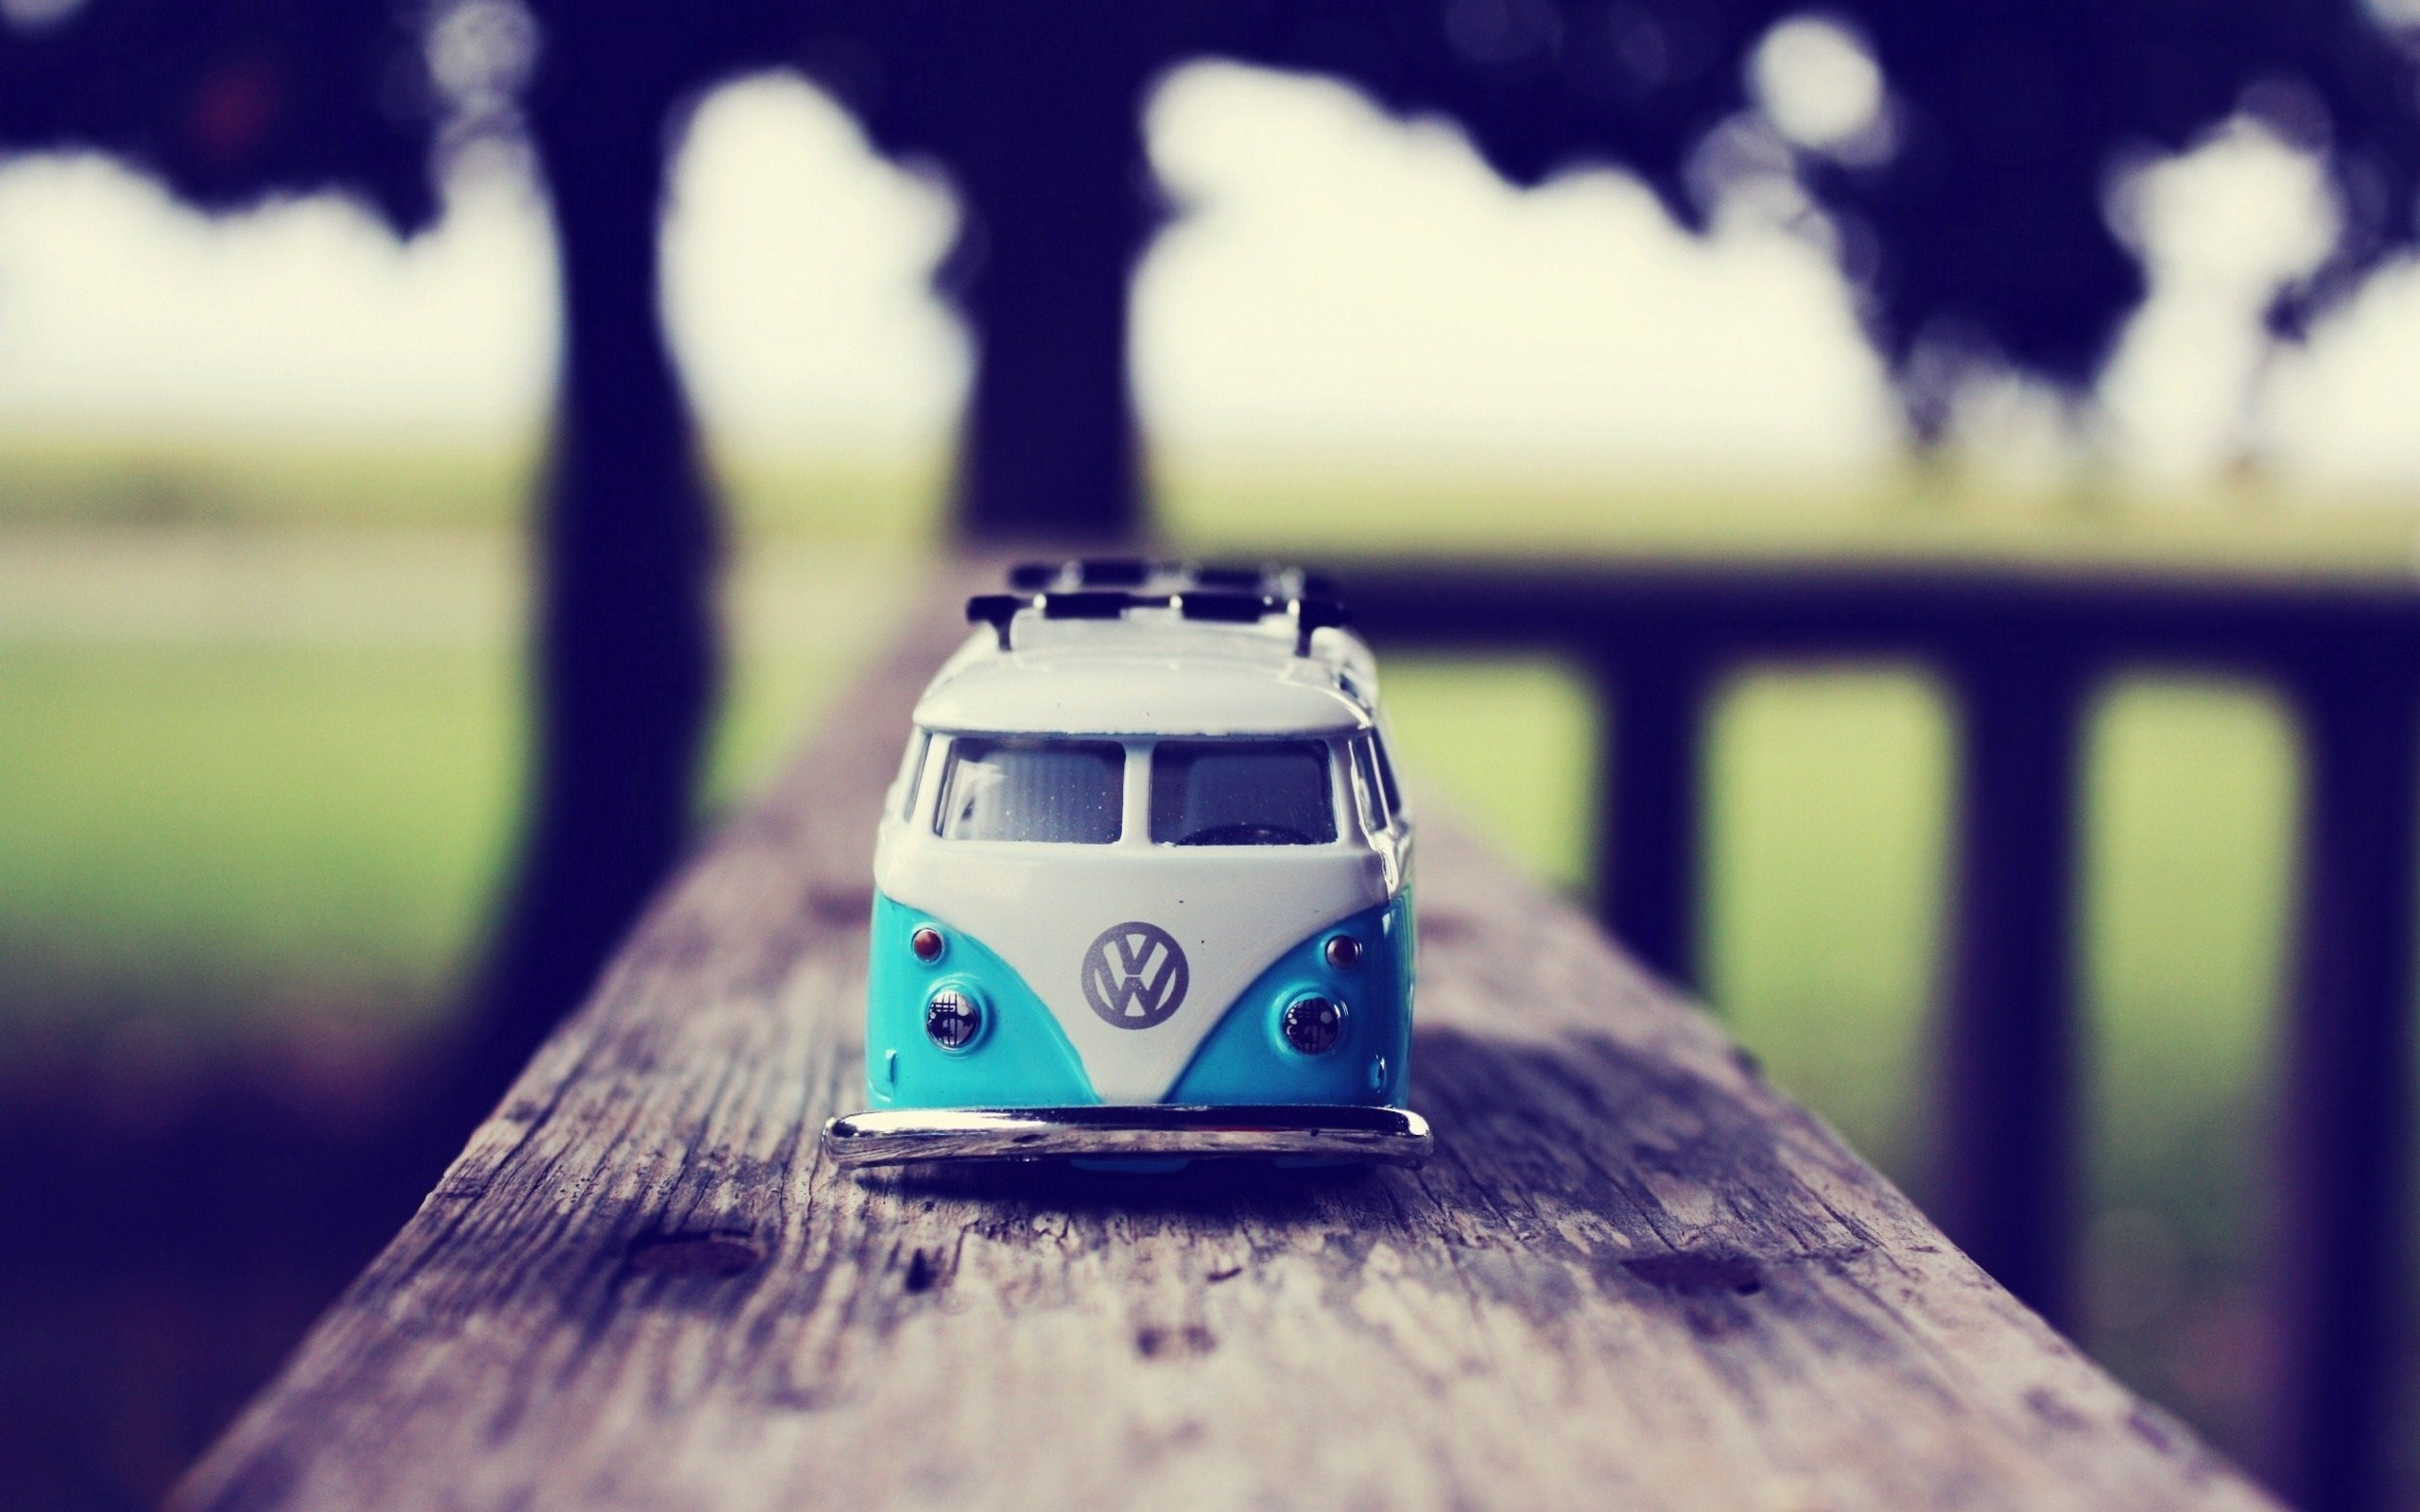 High Quality Fantastic Volkswagen Wallpaper | Full HD Pictures